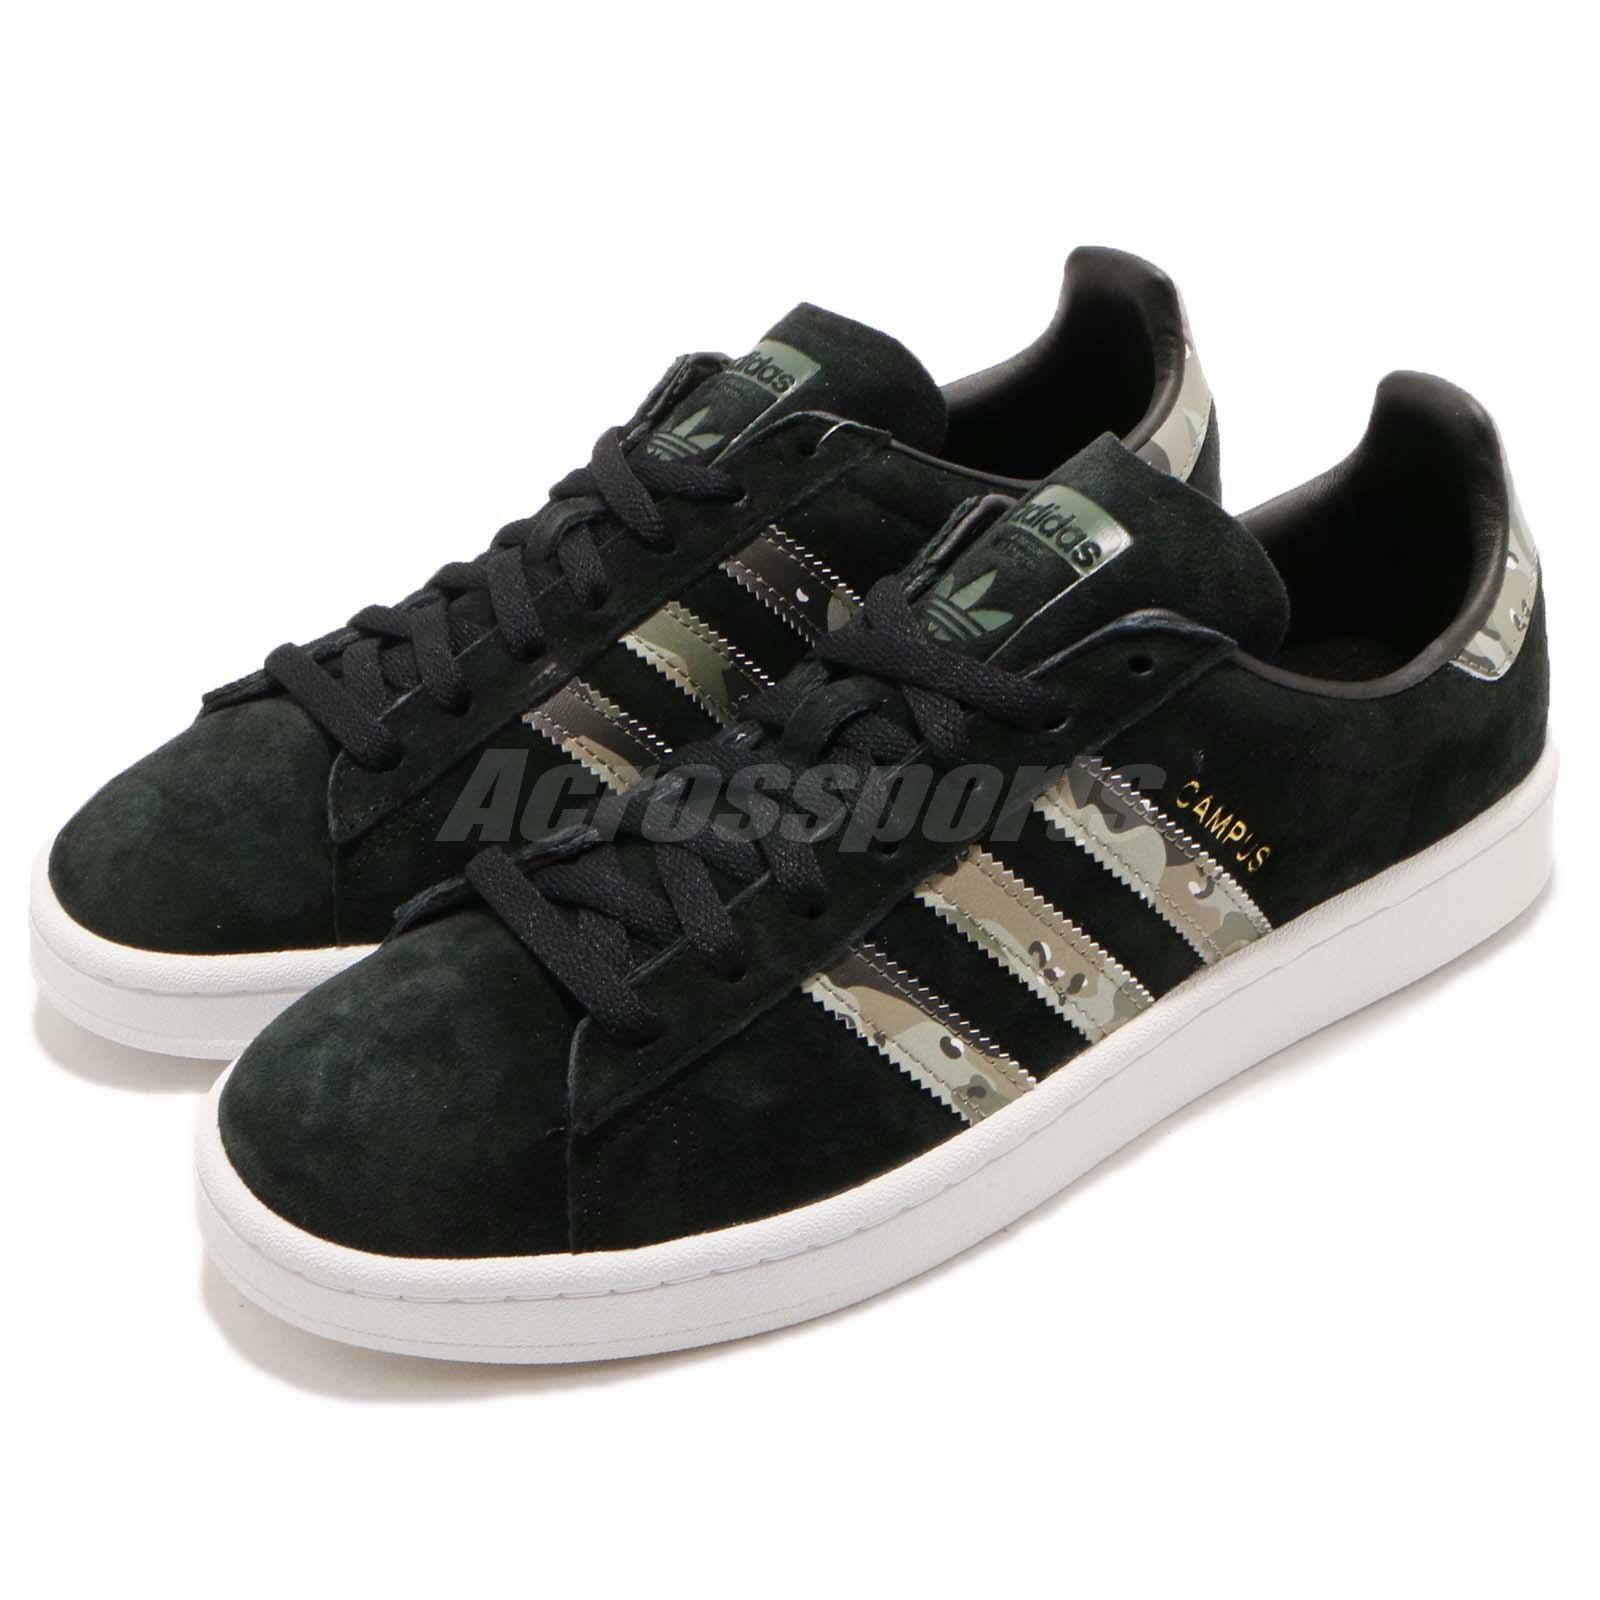 adidas Originals Campus noir Trace Cargo Camo homme Casual chaussures Sneakers B37821